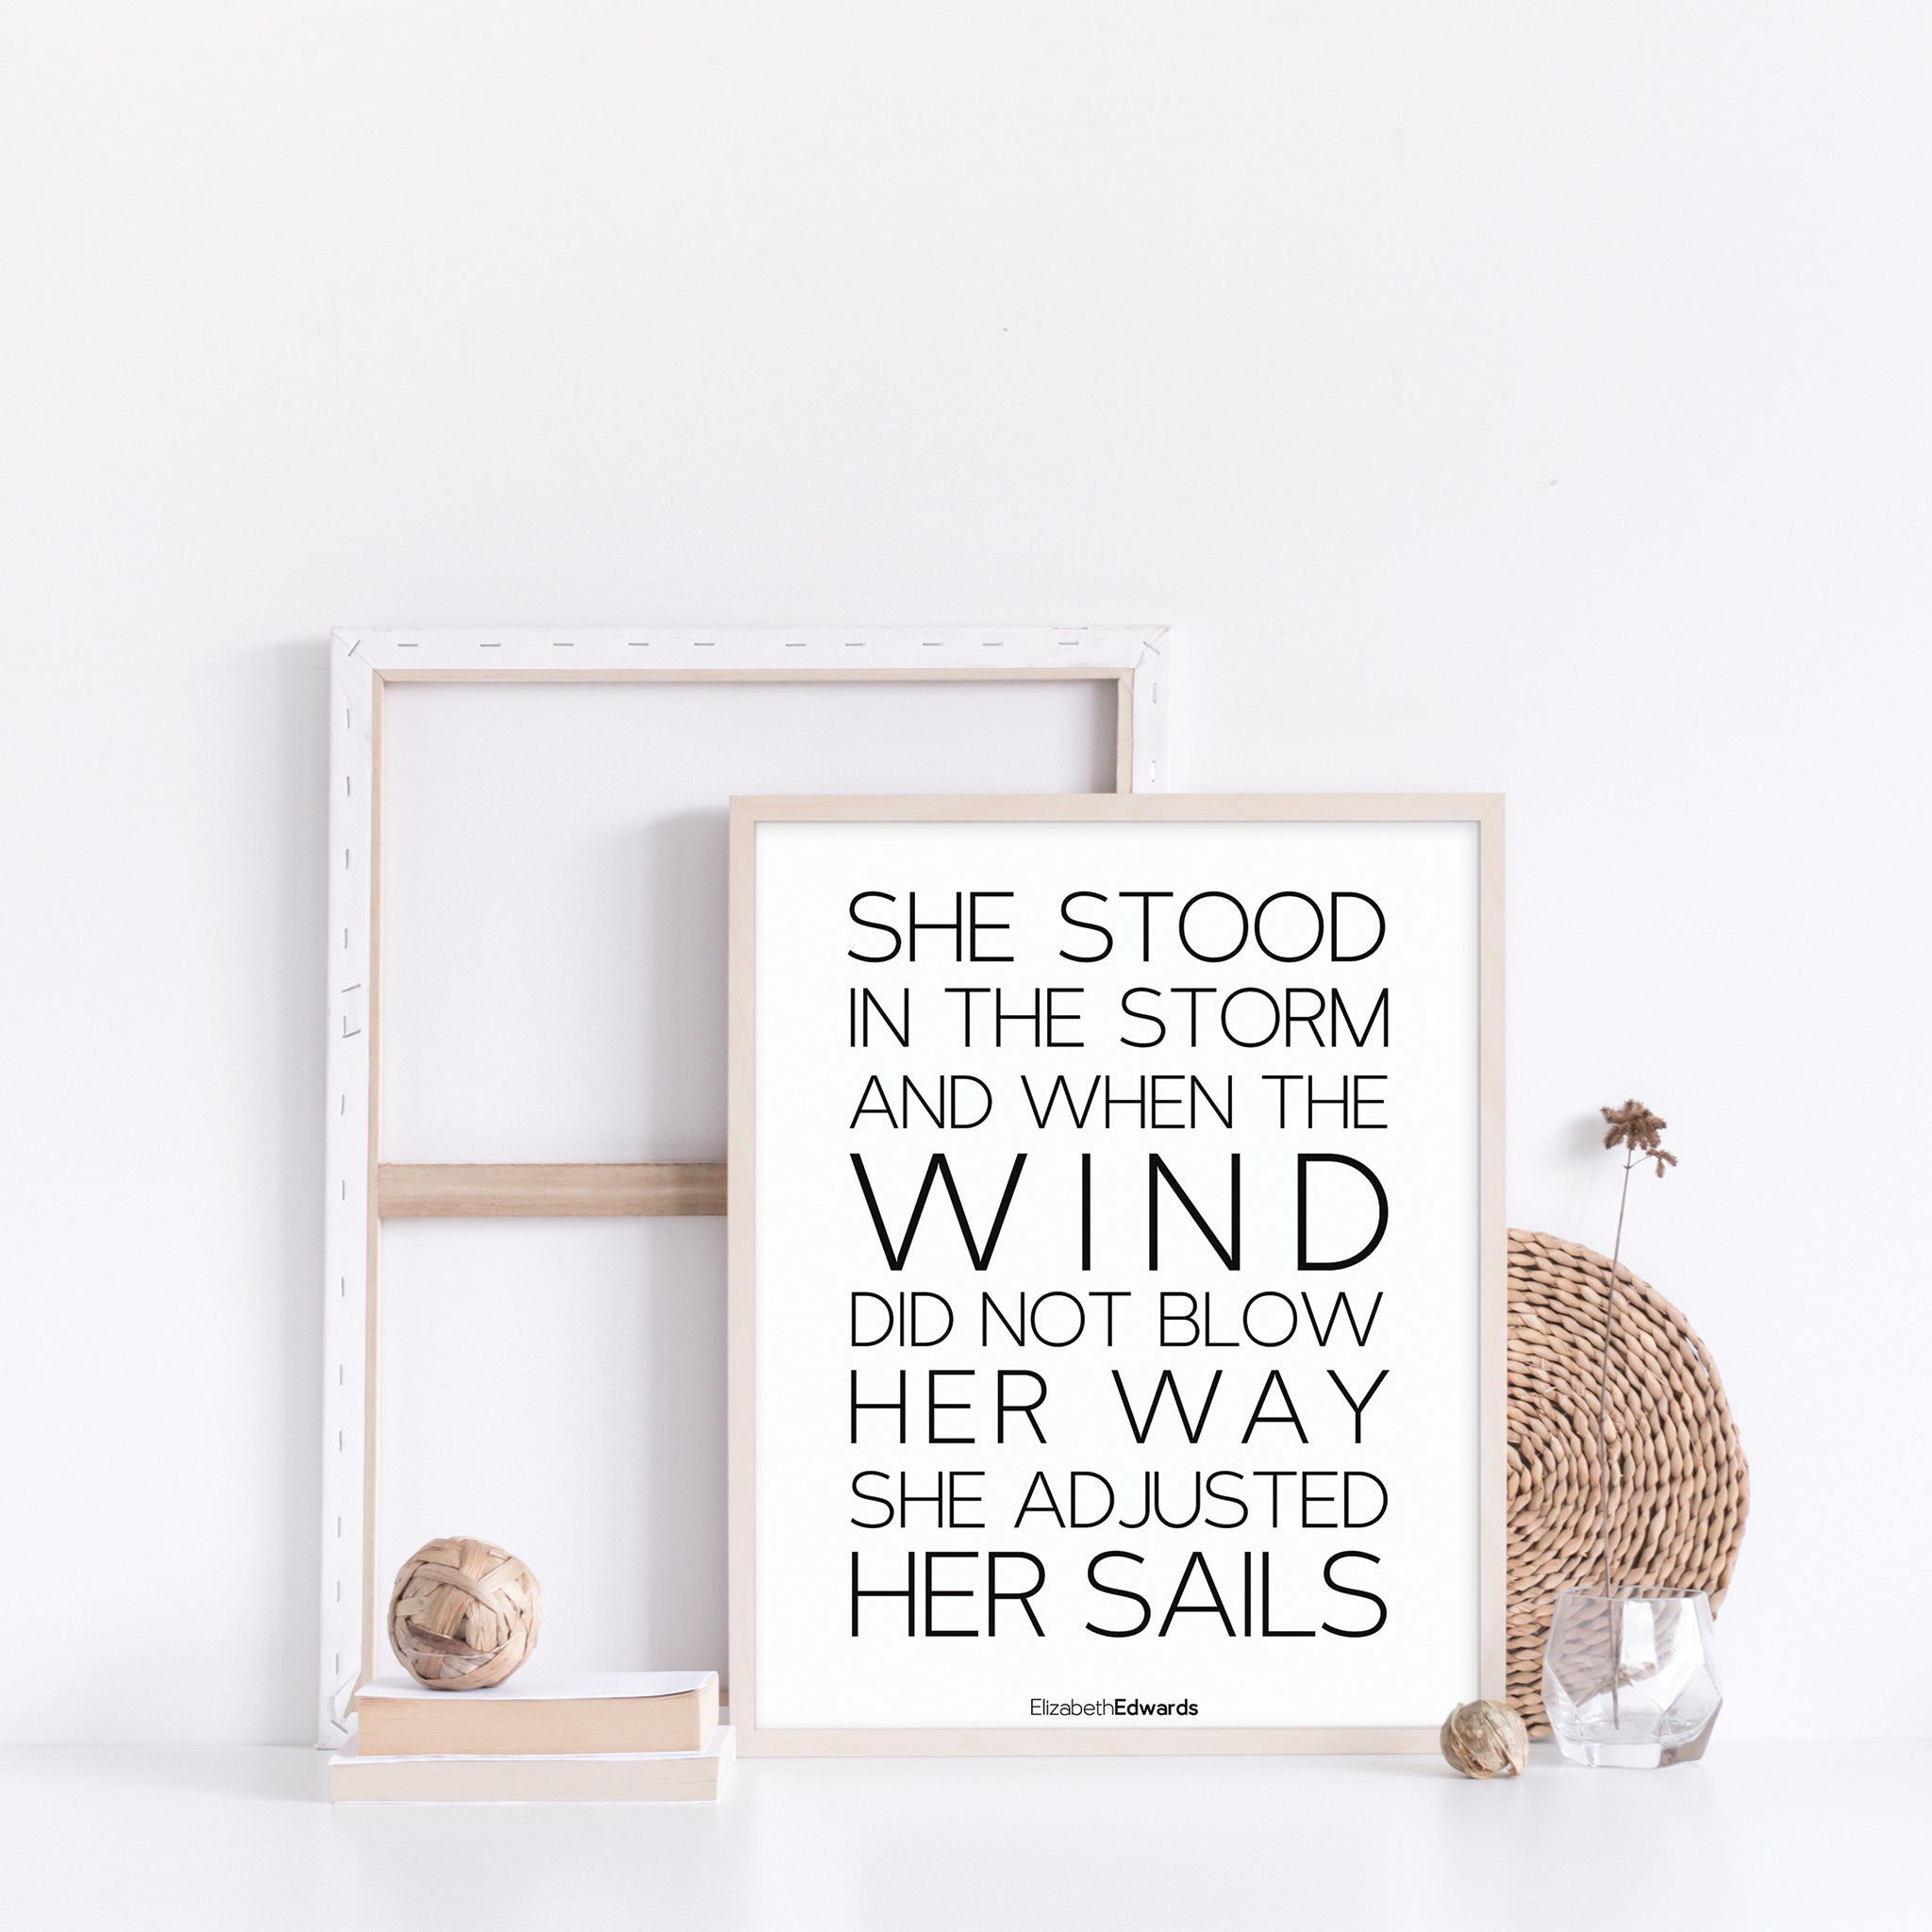 She stood in the storm and when the wind did not blow her away, she adjusted her sails motivational quote wall poster